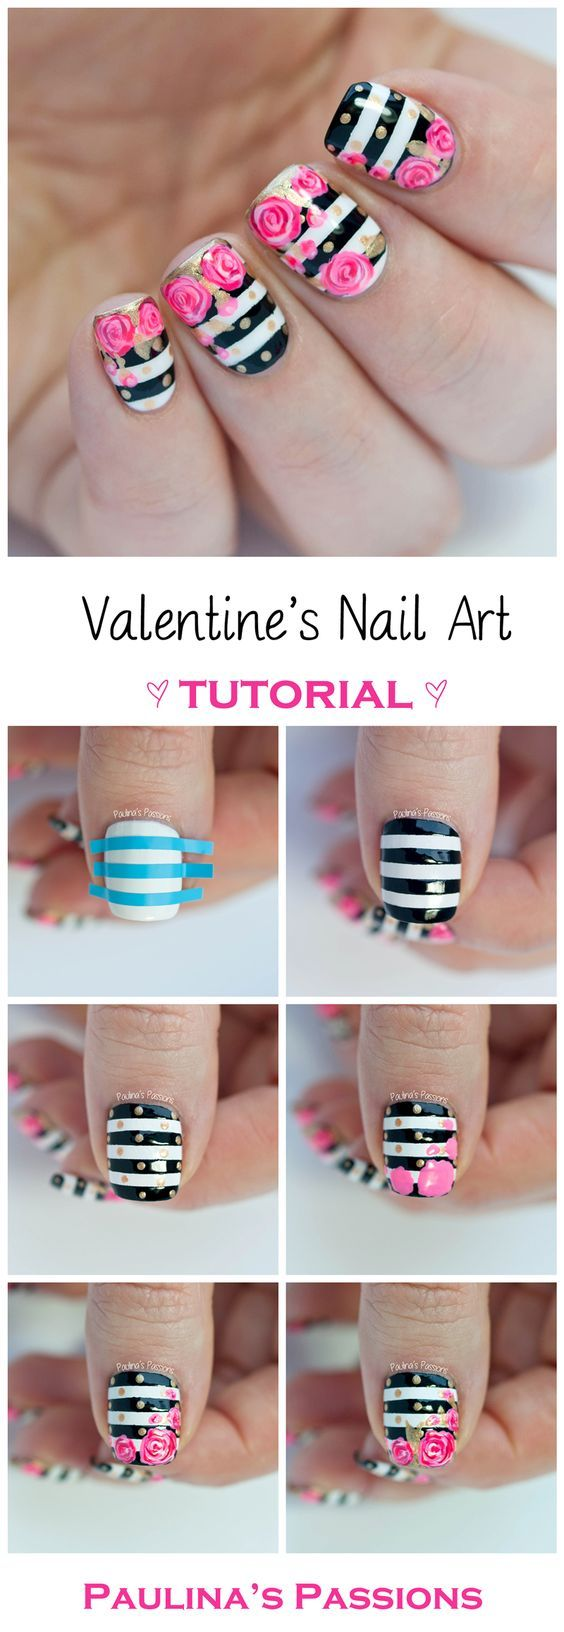 15 Nail Tutorials to Paint Floral Nails - Pretty Designs